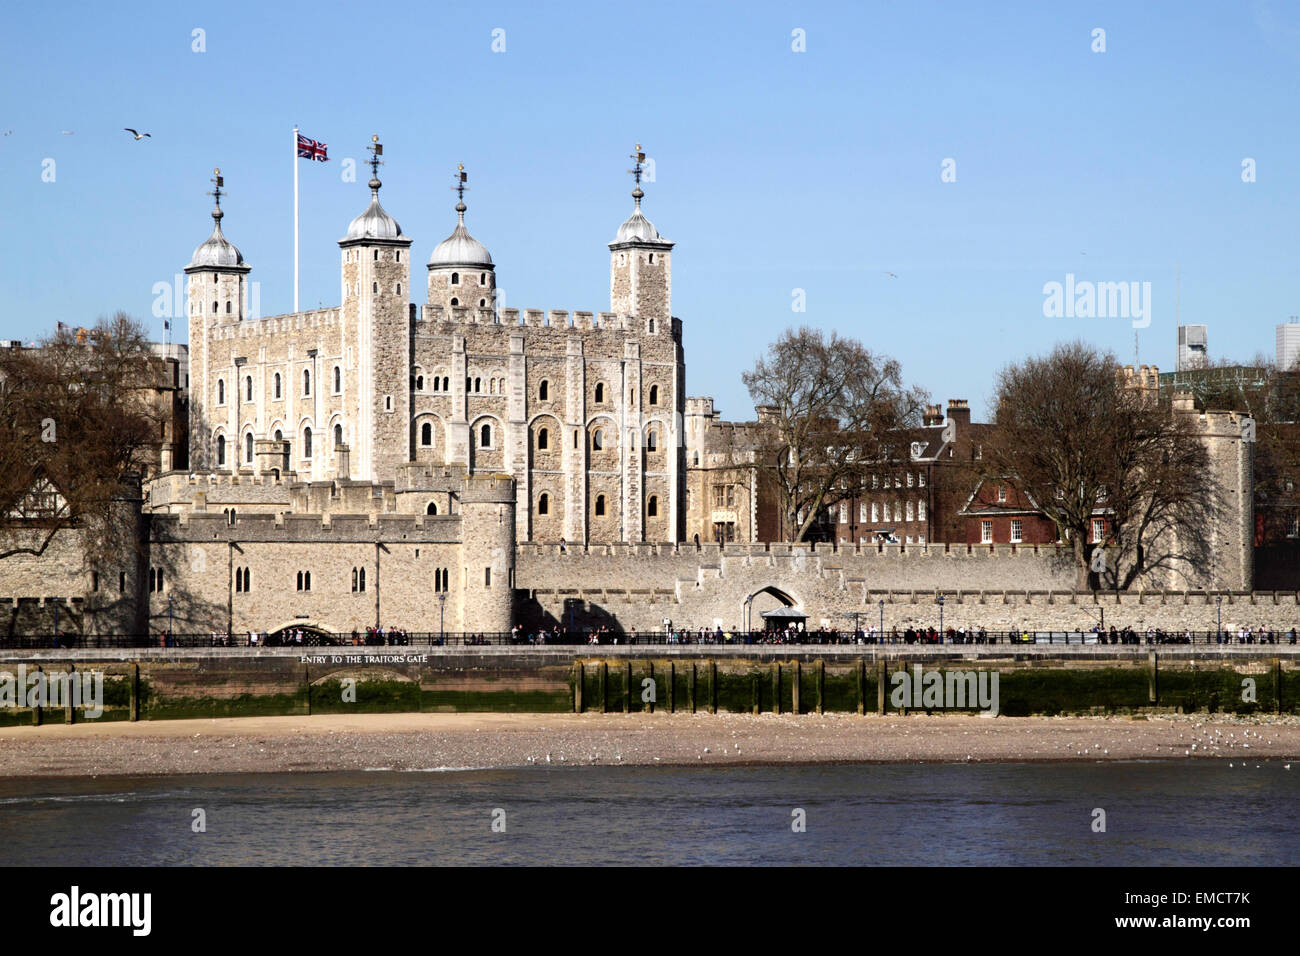 The Tower of London view from River Thames April 2015 - Stock Image